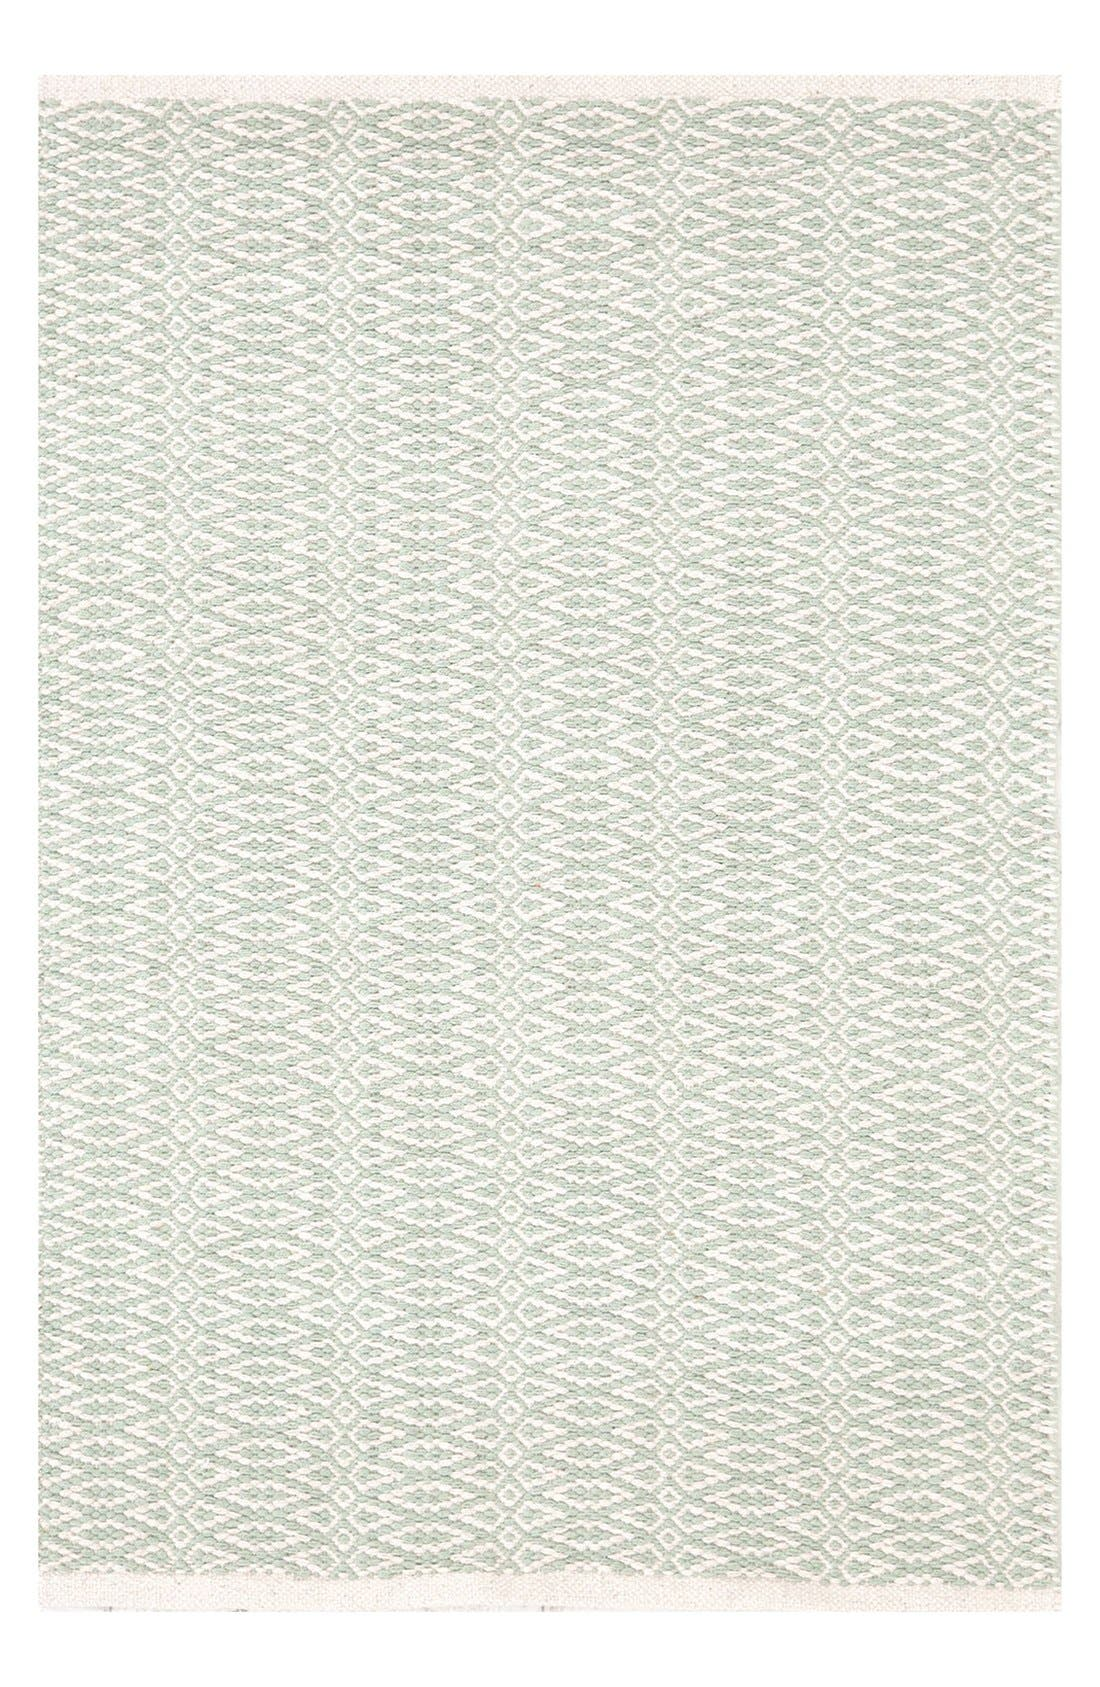 All Rugs | Nordstrom